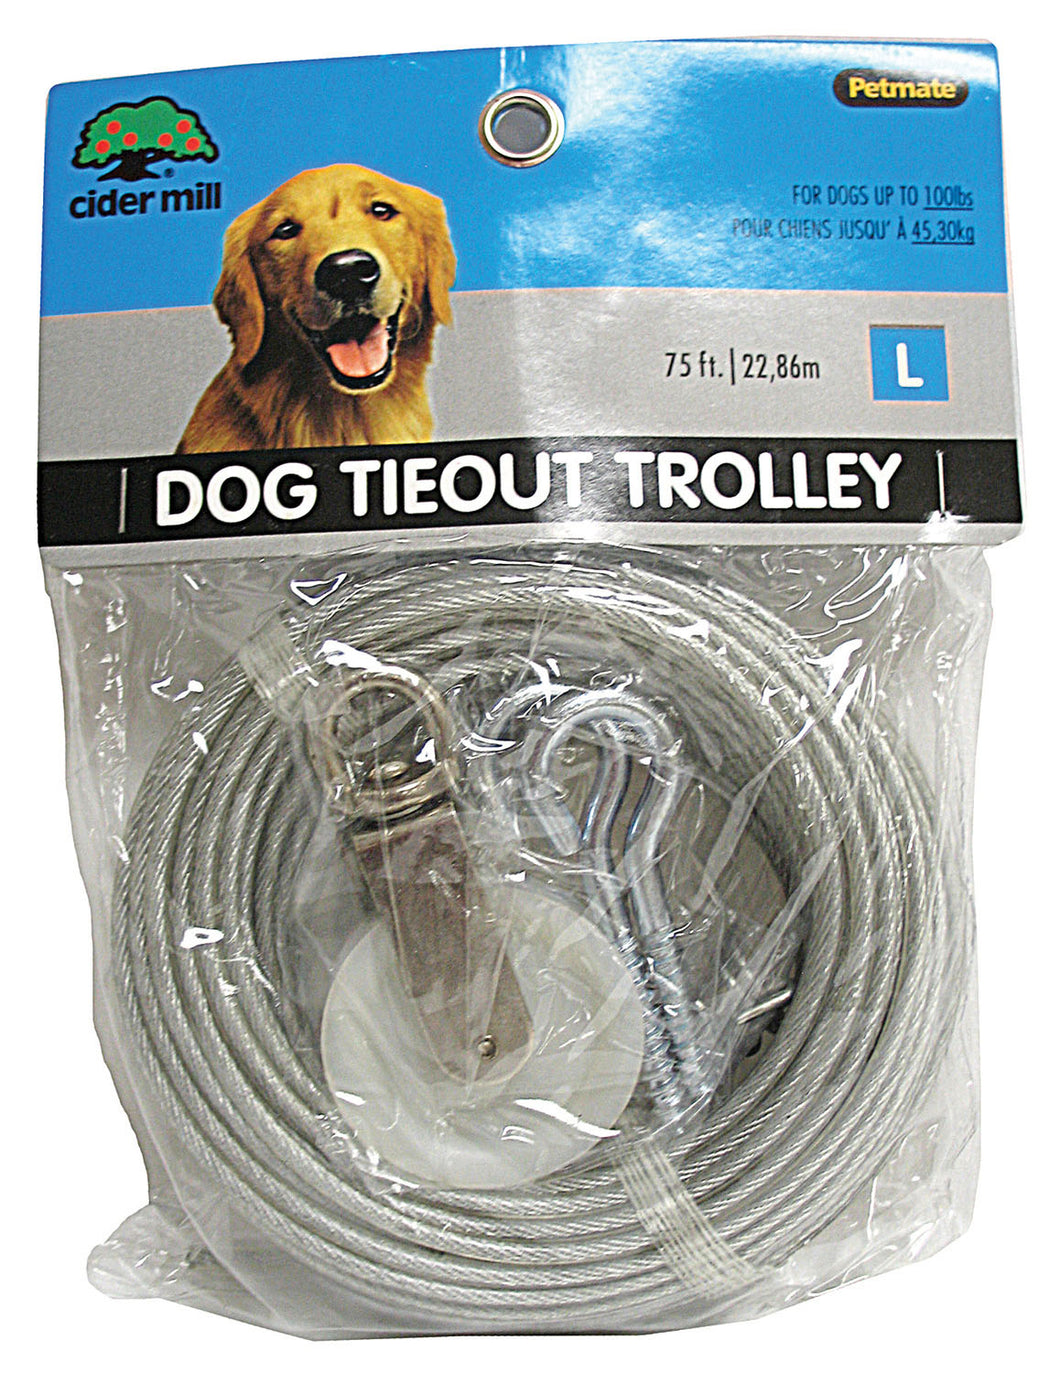 Aspen Pet Dog Tieout With Trolley Wheel